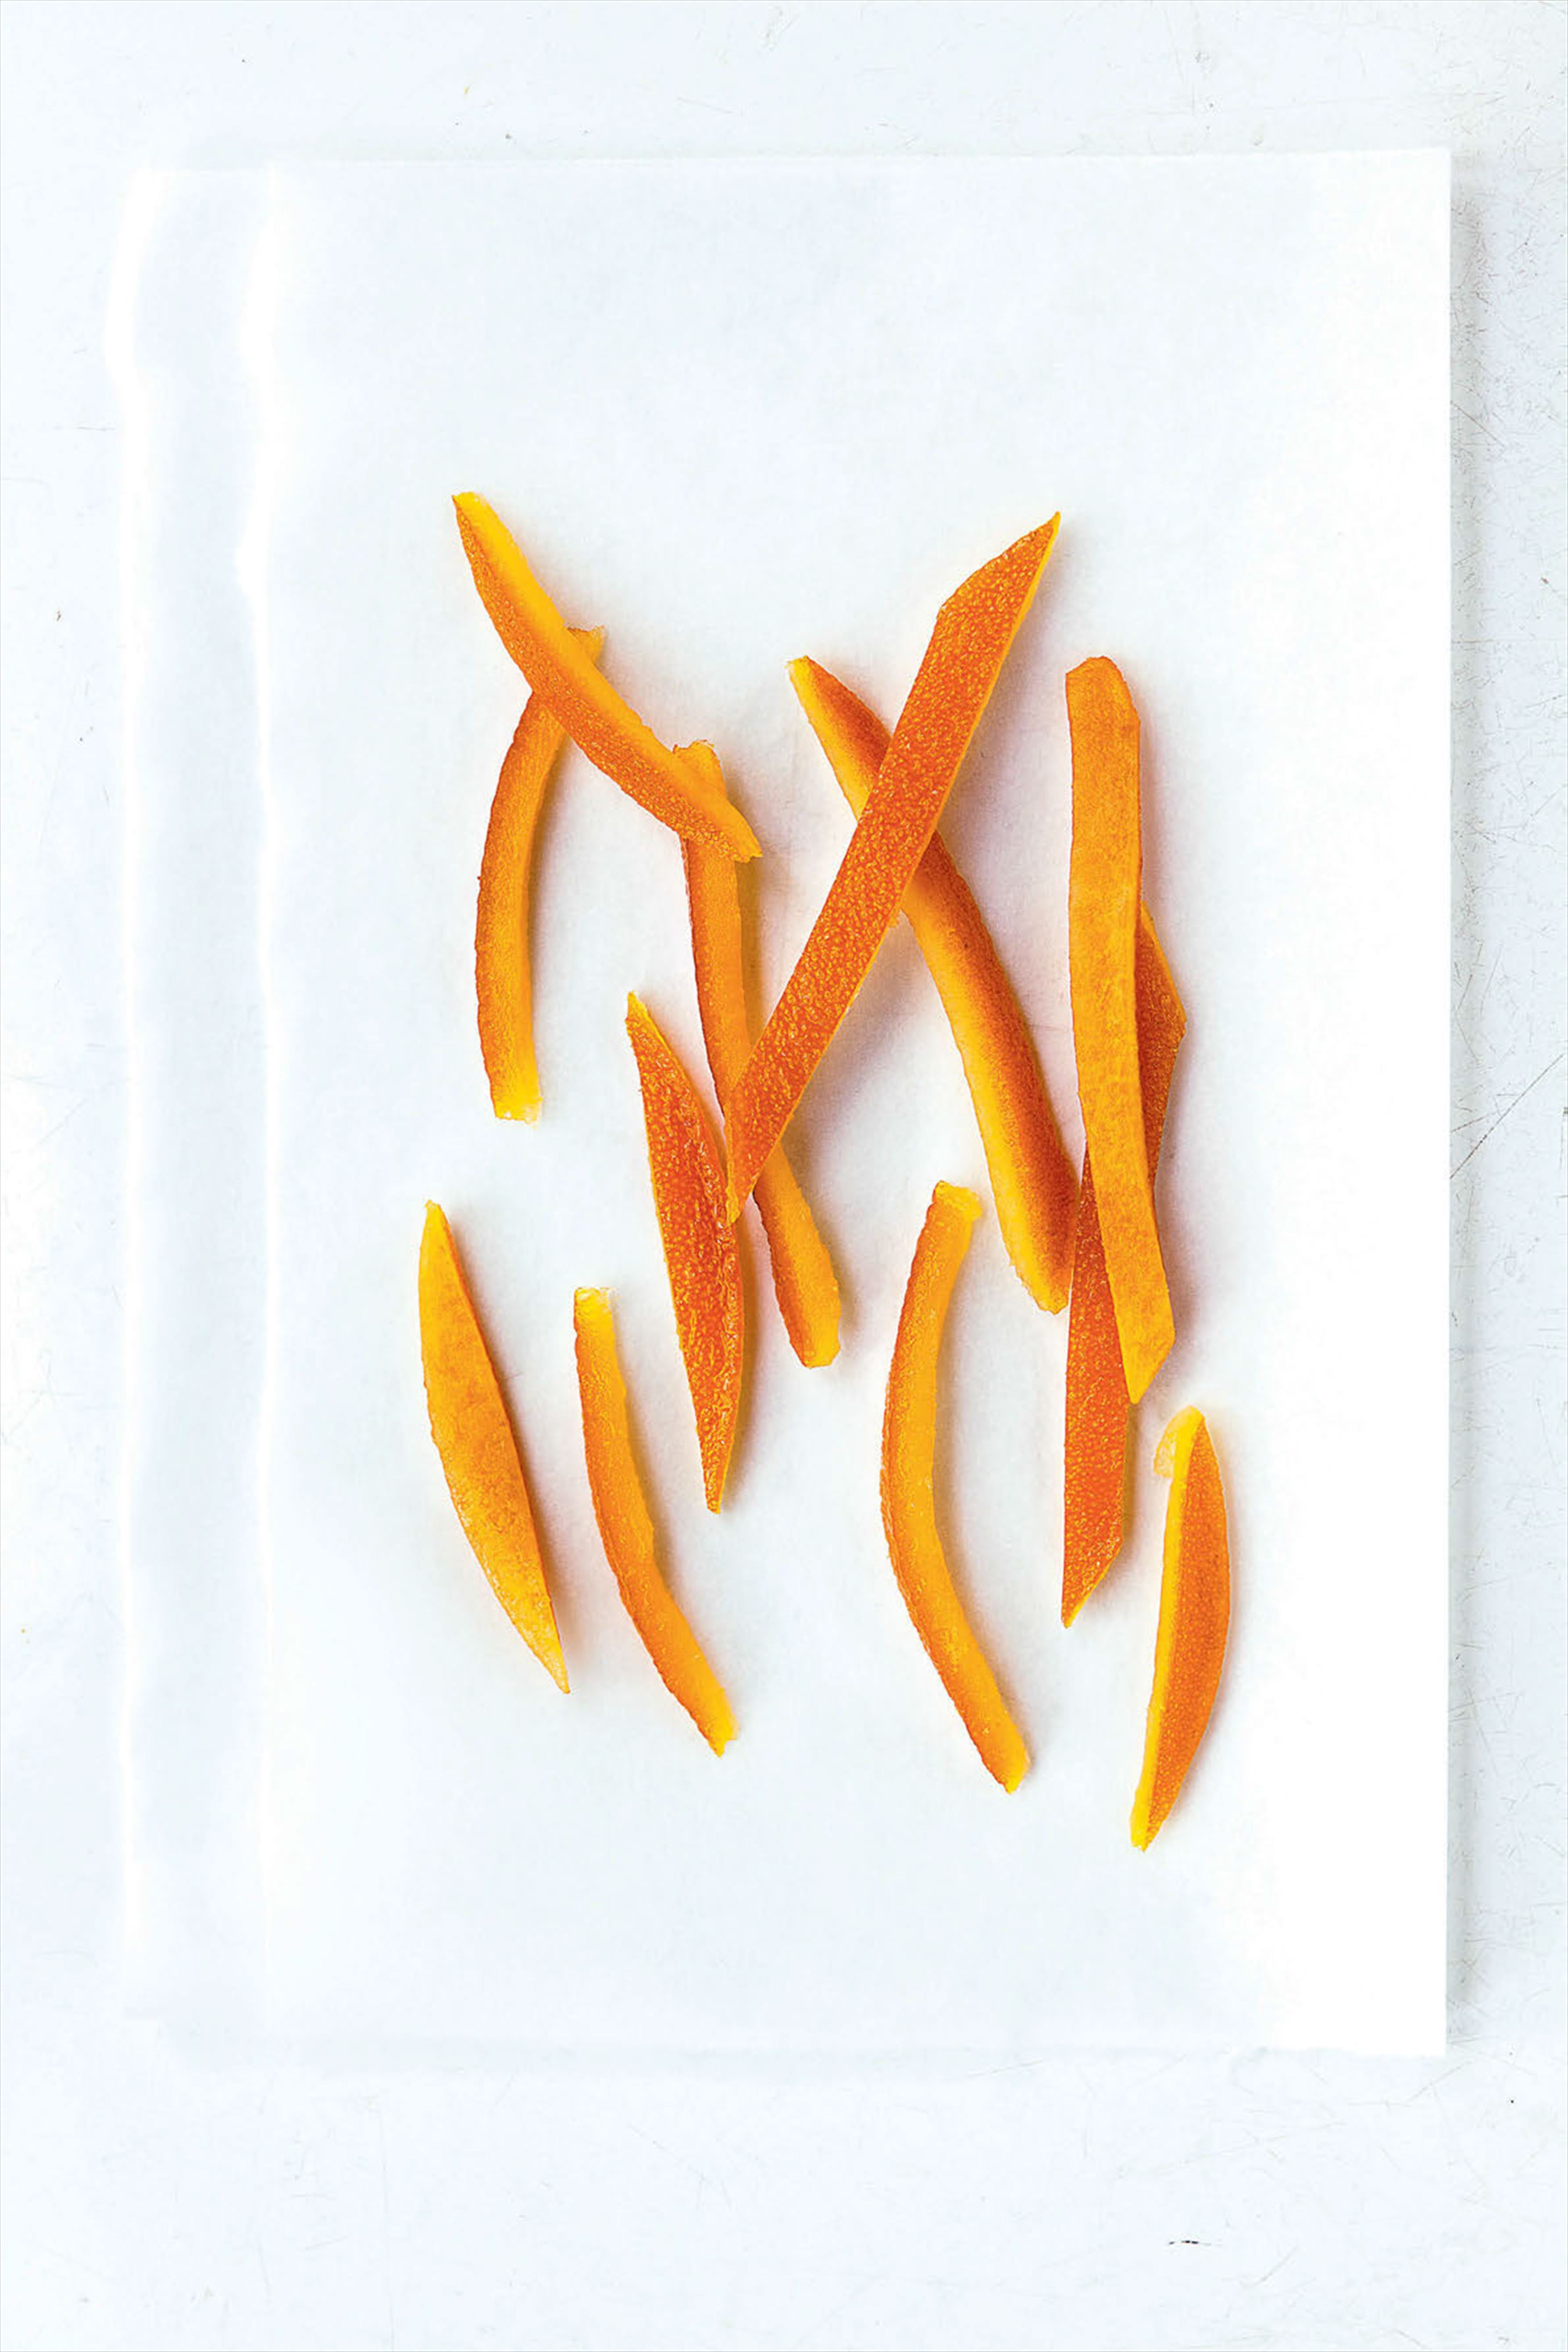 Candied orange peel